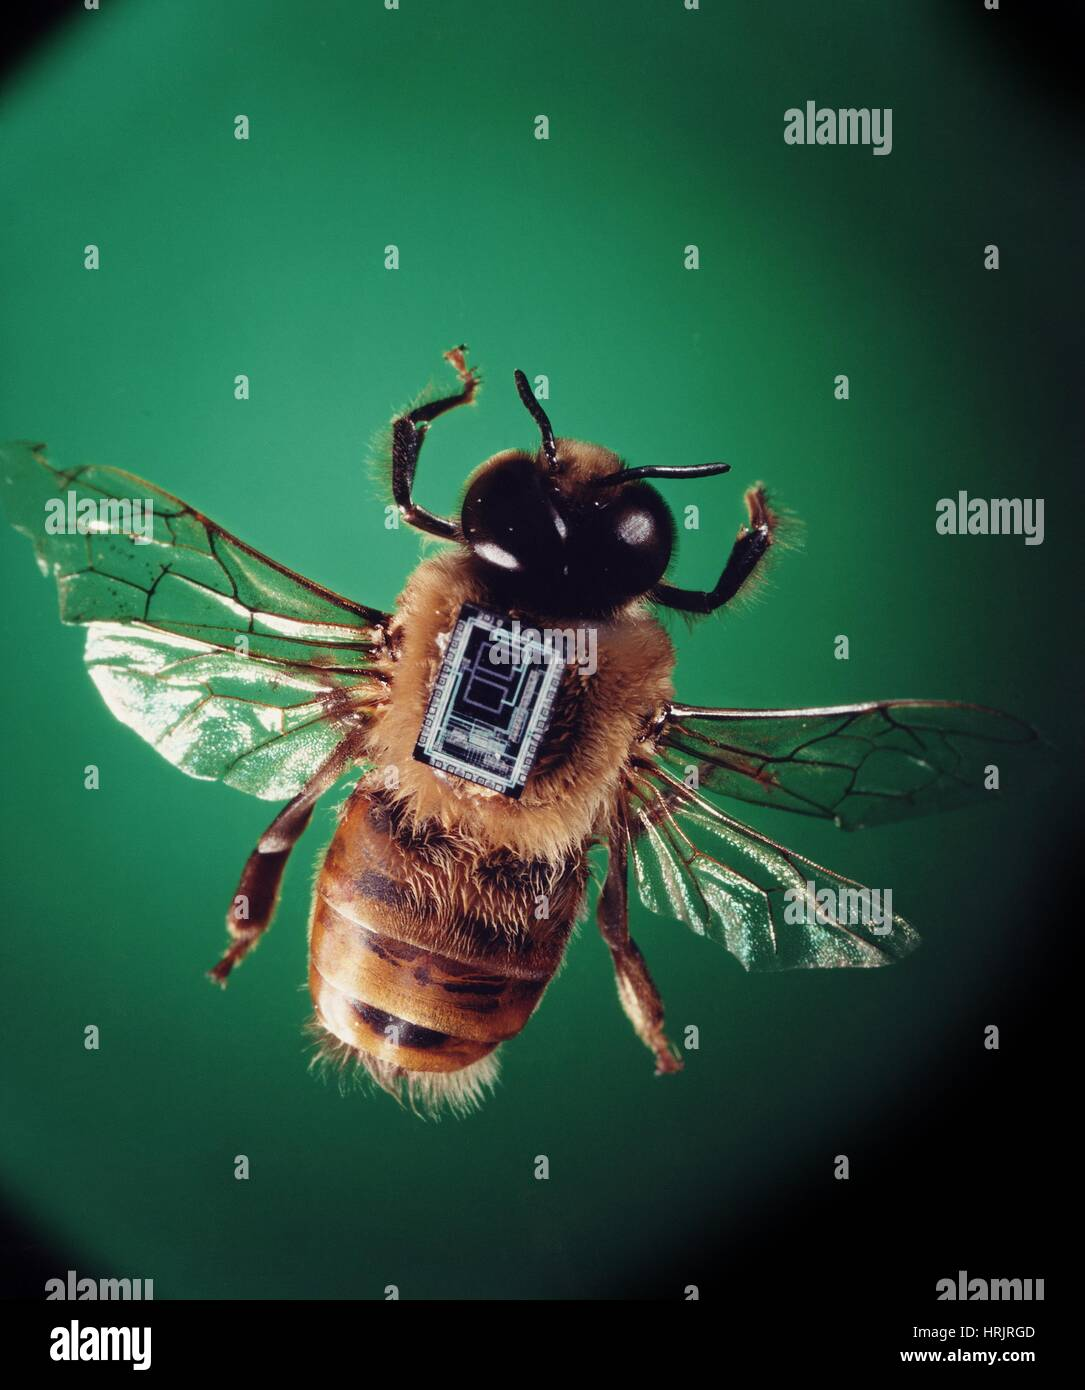 Transmitter mounted on a bee - Stock Image